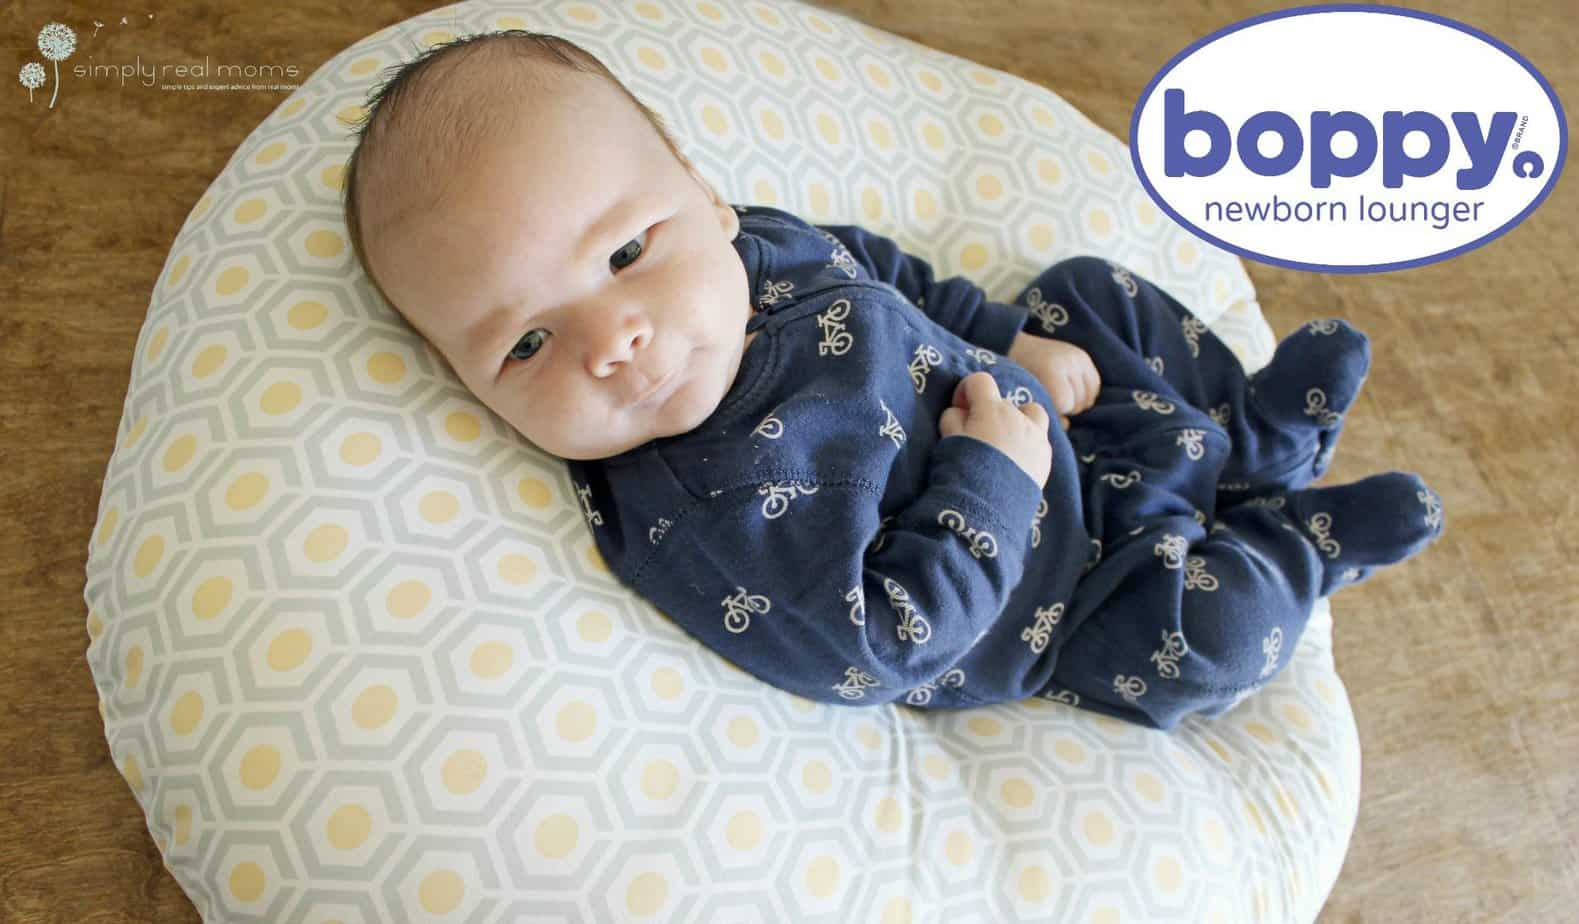 The Boppy Newborn Lounger 1